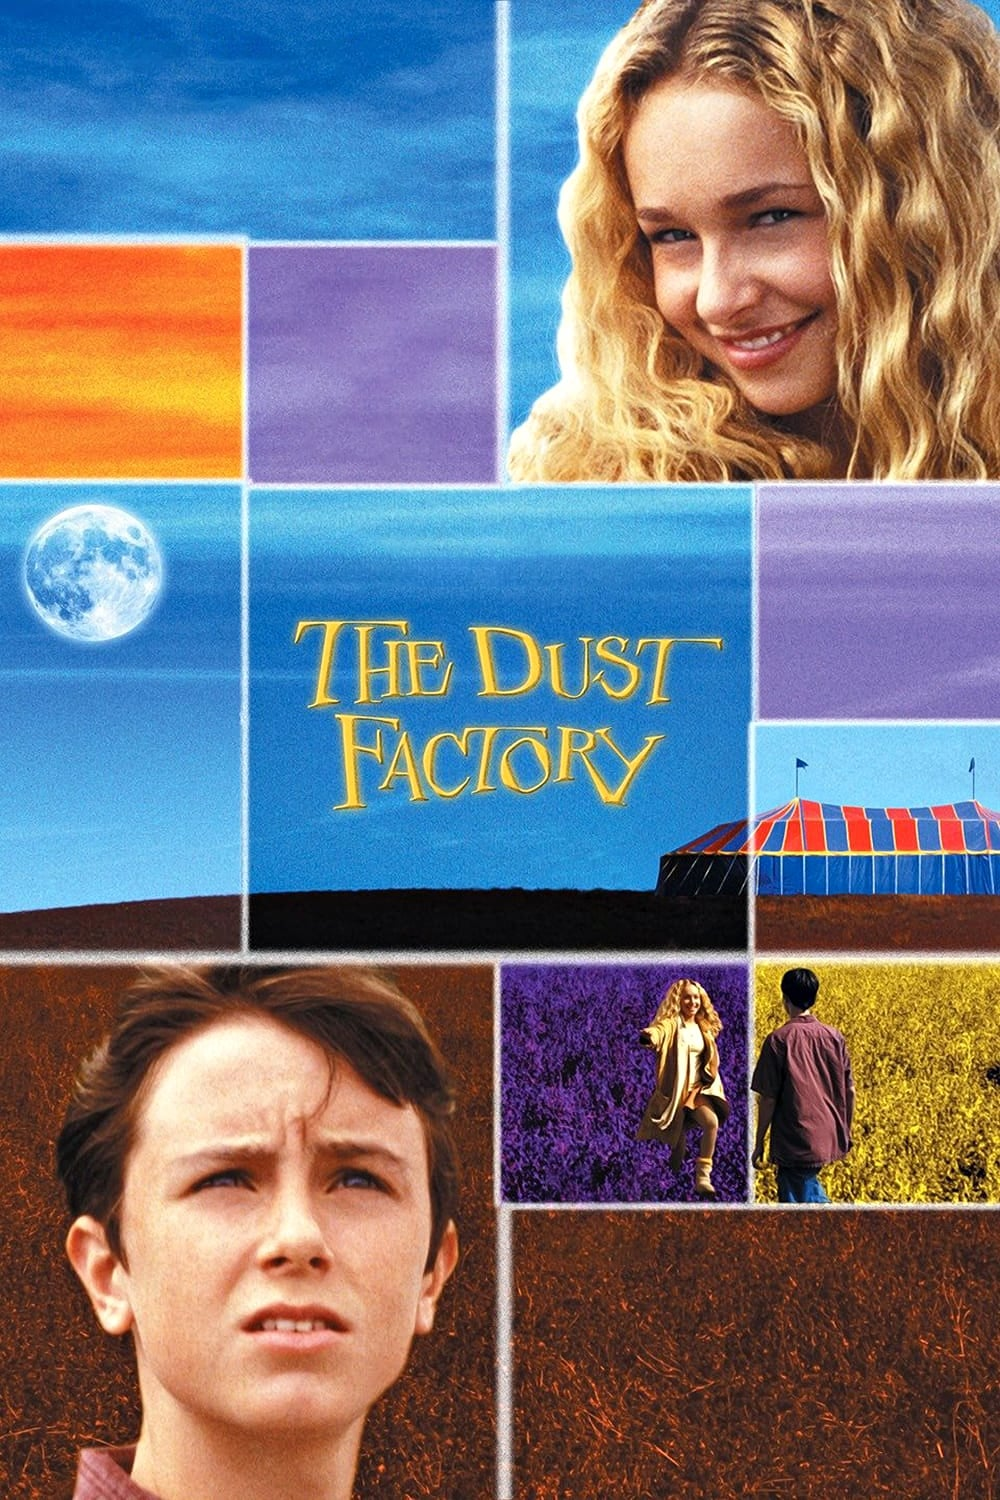 The Dust Factory - 2004